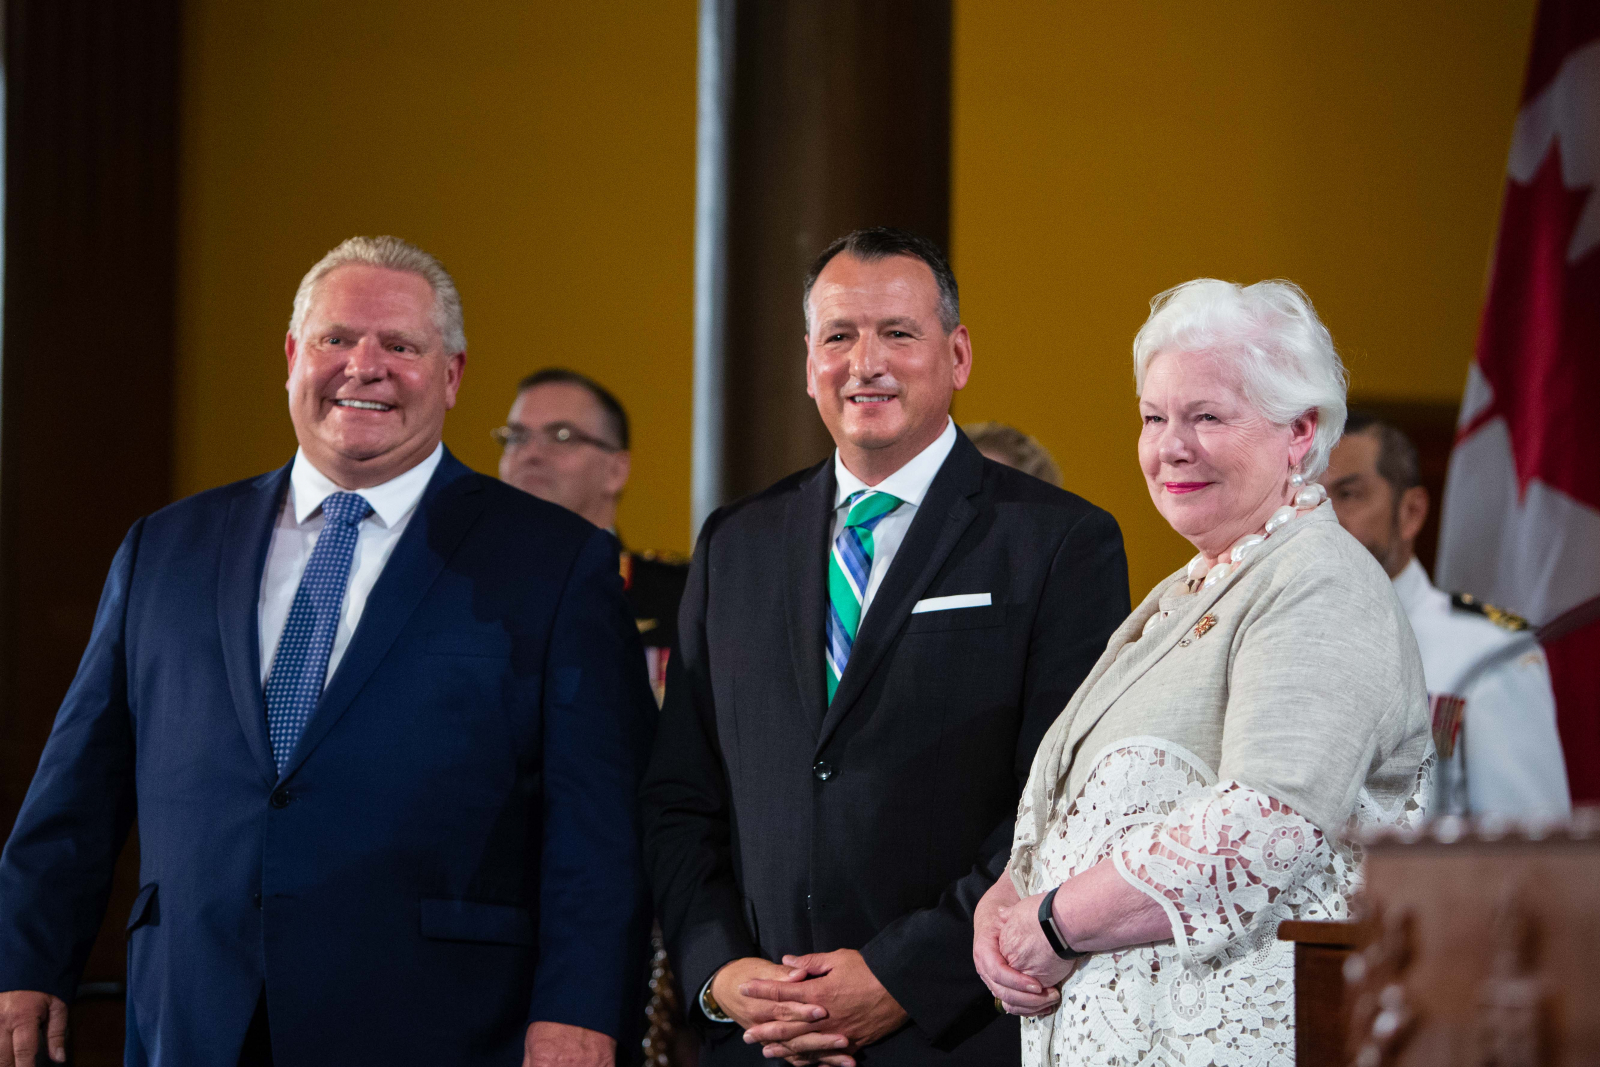 Ontario Premier Doug Ford, Indigenous Affairs Minister Greg Rickford, and Ontario Lieutenant Governor Elizabeth Dowdeswell take part in a cabinet swearing-in ceremony at Queen's Park in Toronto on June 29, 2018. Photo by Alex Tétreault